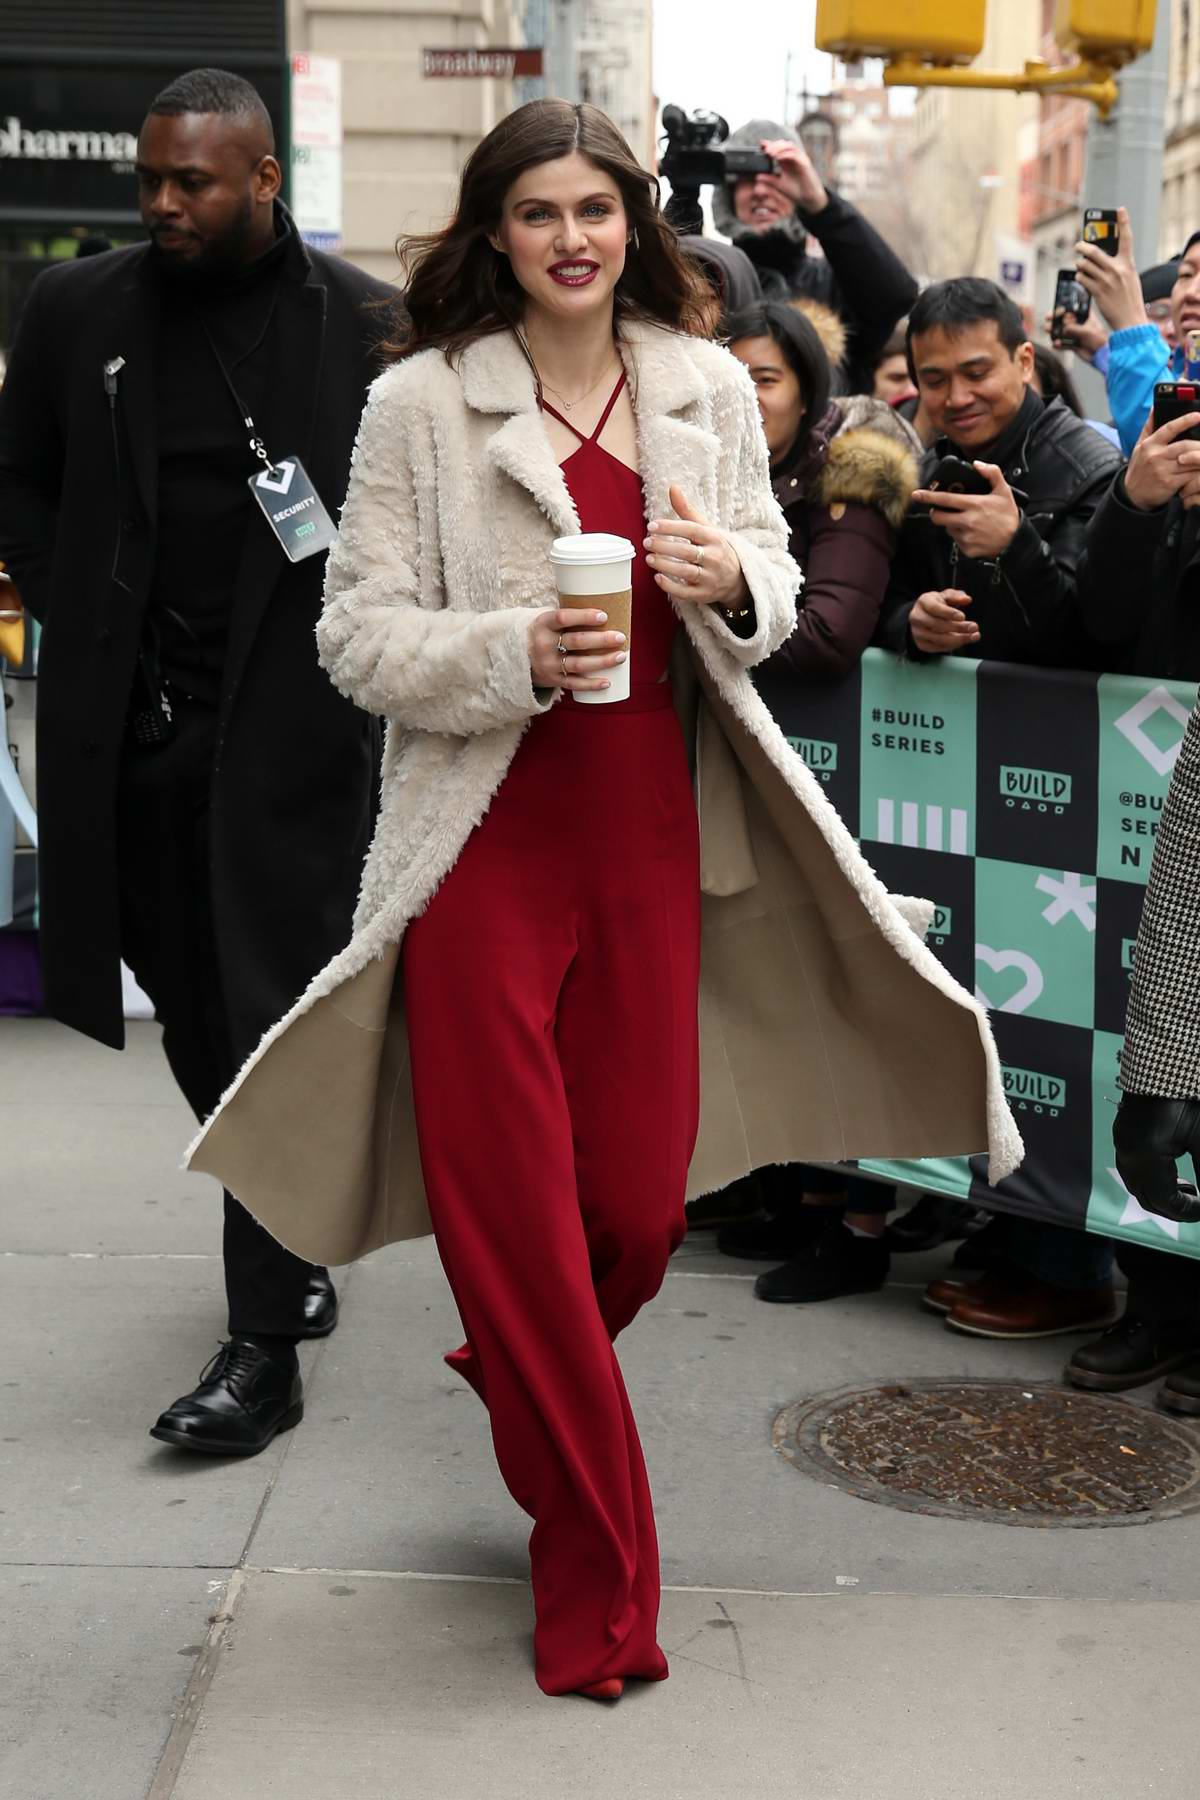 Alexandra Daddario wore a red jumpsuit with a white sherpa overcoat while leaving AOL Build Series in New York City